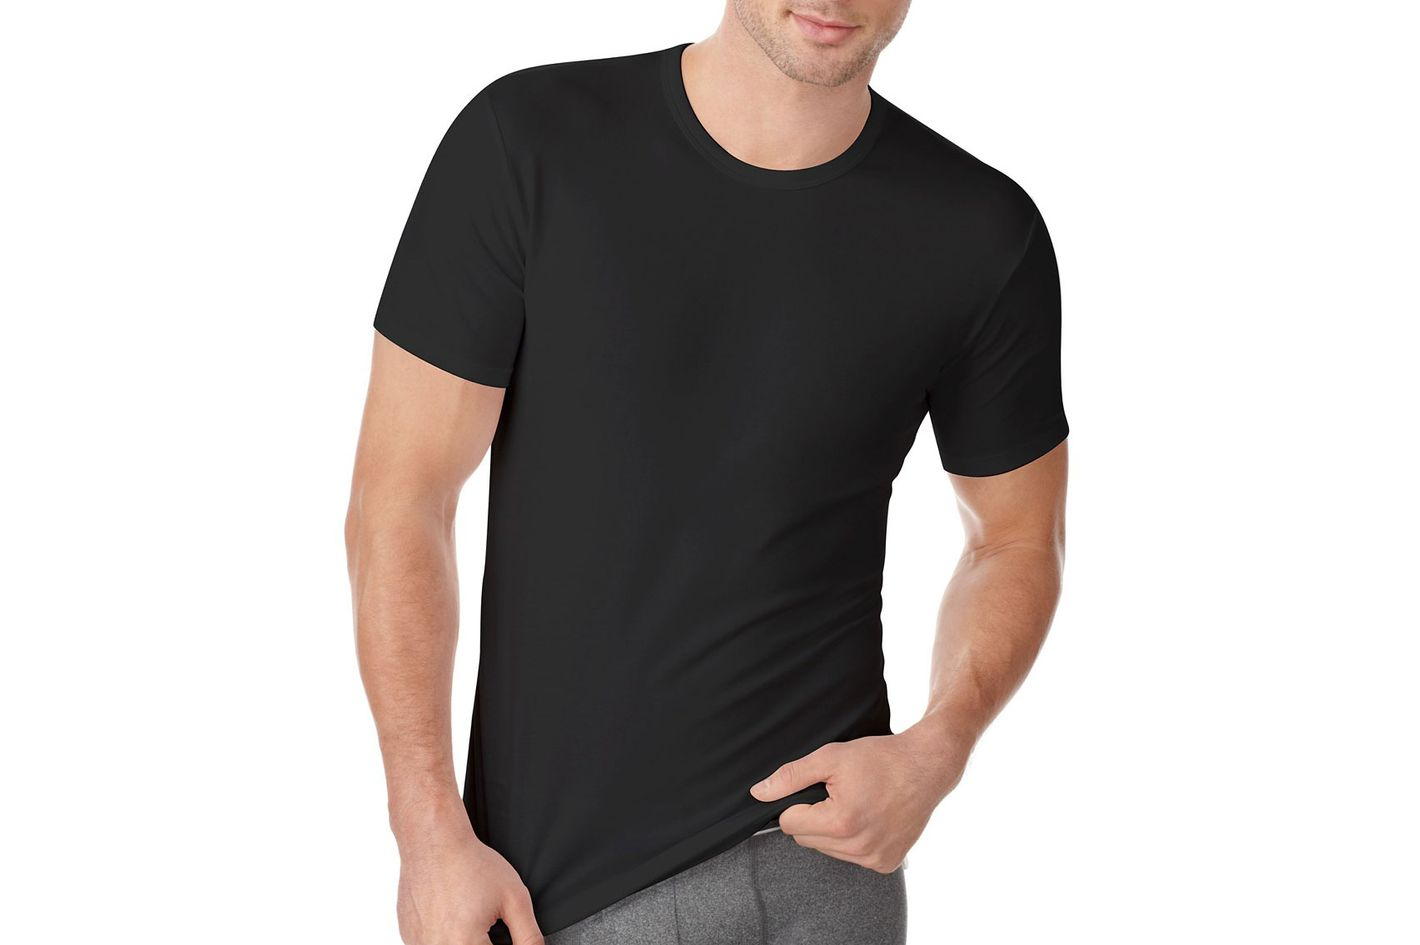 23382059ffa Best stretchy black T-shirt. Calvin Klein Men s Cotton Stretch Crew-neck  Undershirt 2-Pack